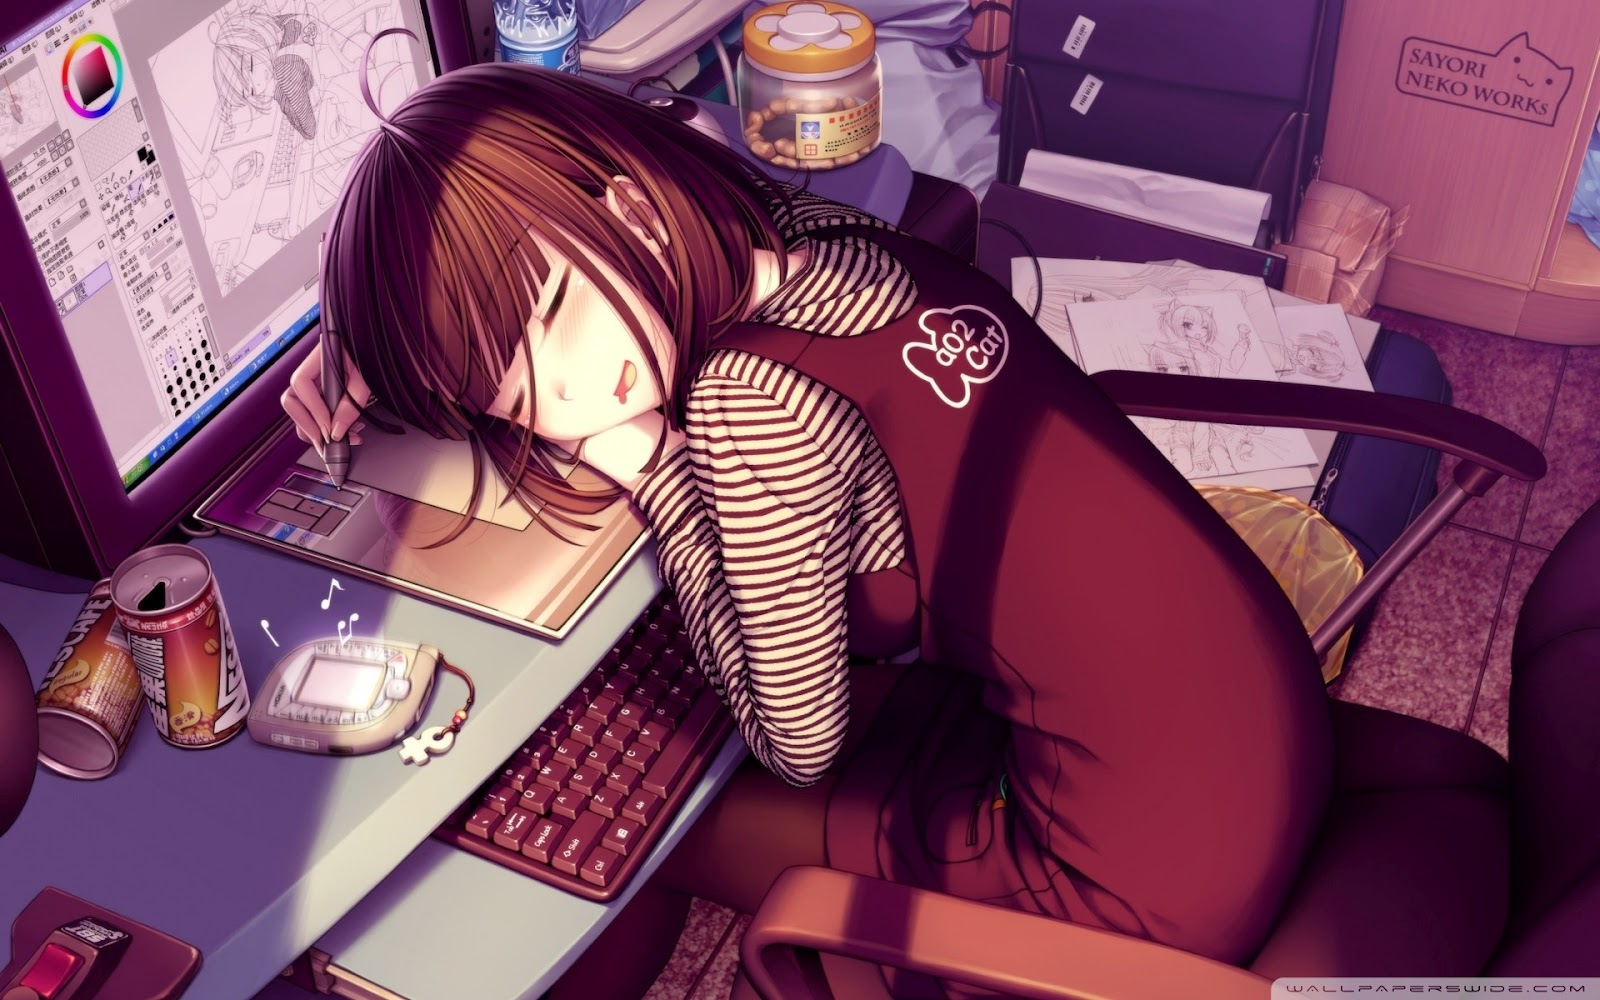 Chica anime durmiendo anime wallpapers - Wallpaper manga anime ...